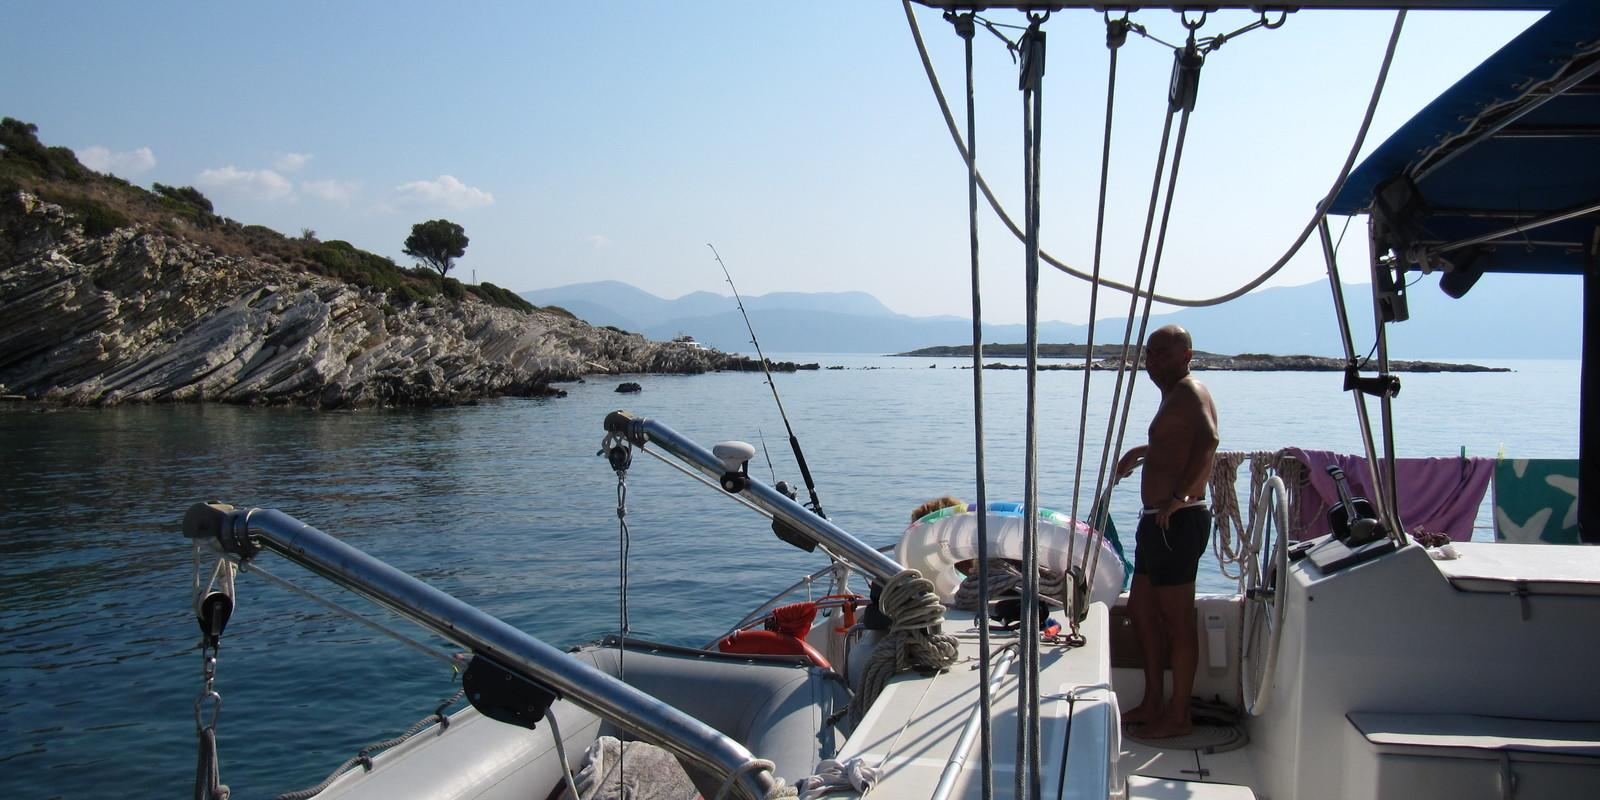 Tour of the Aeolian Islands with the possibility of trekking